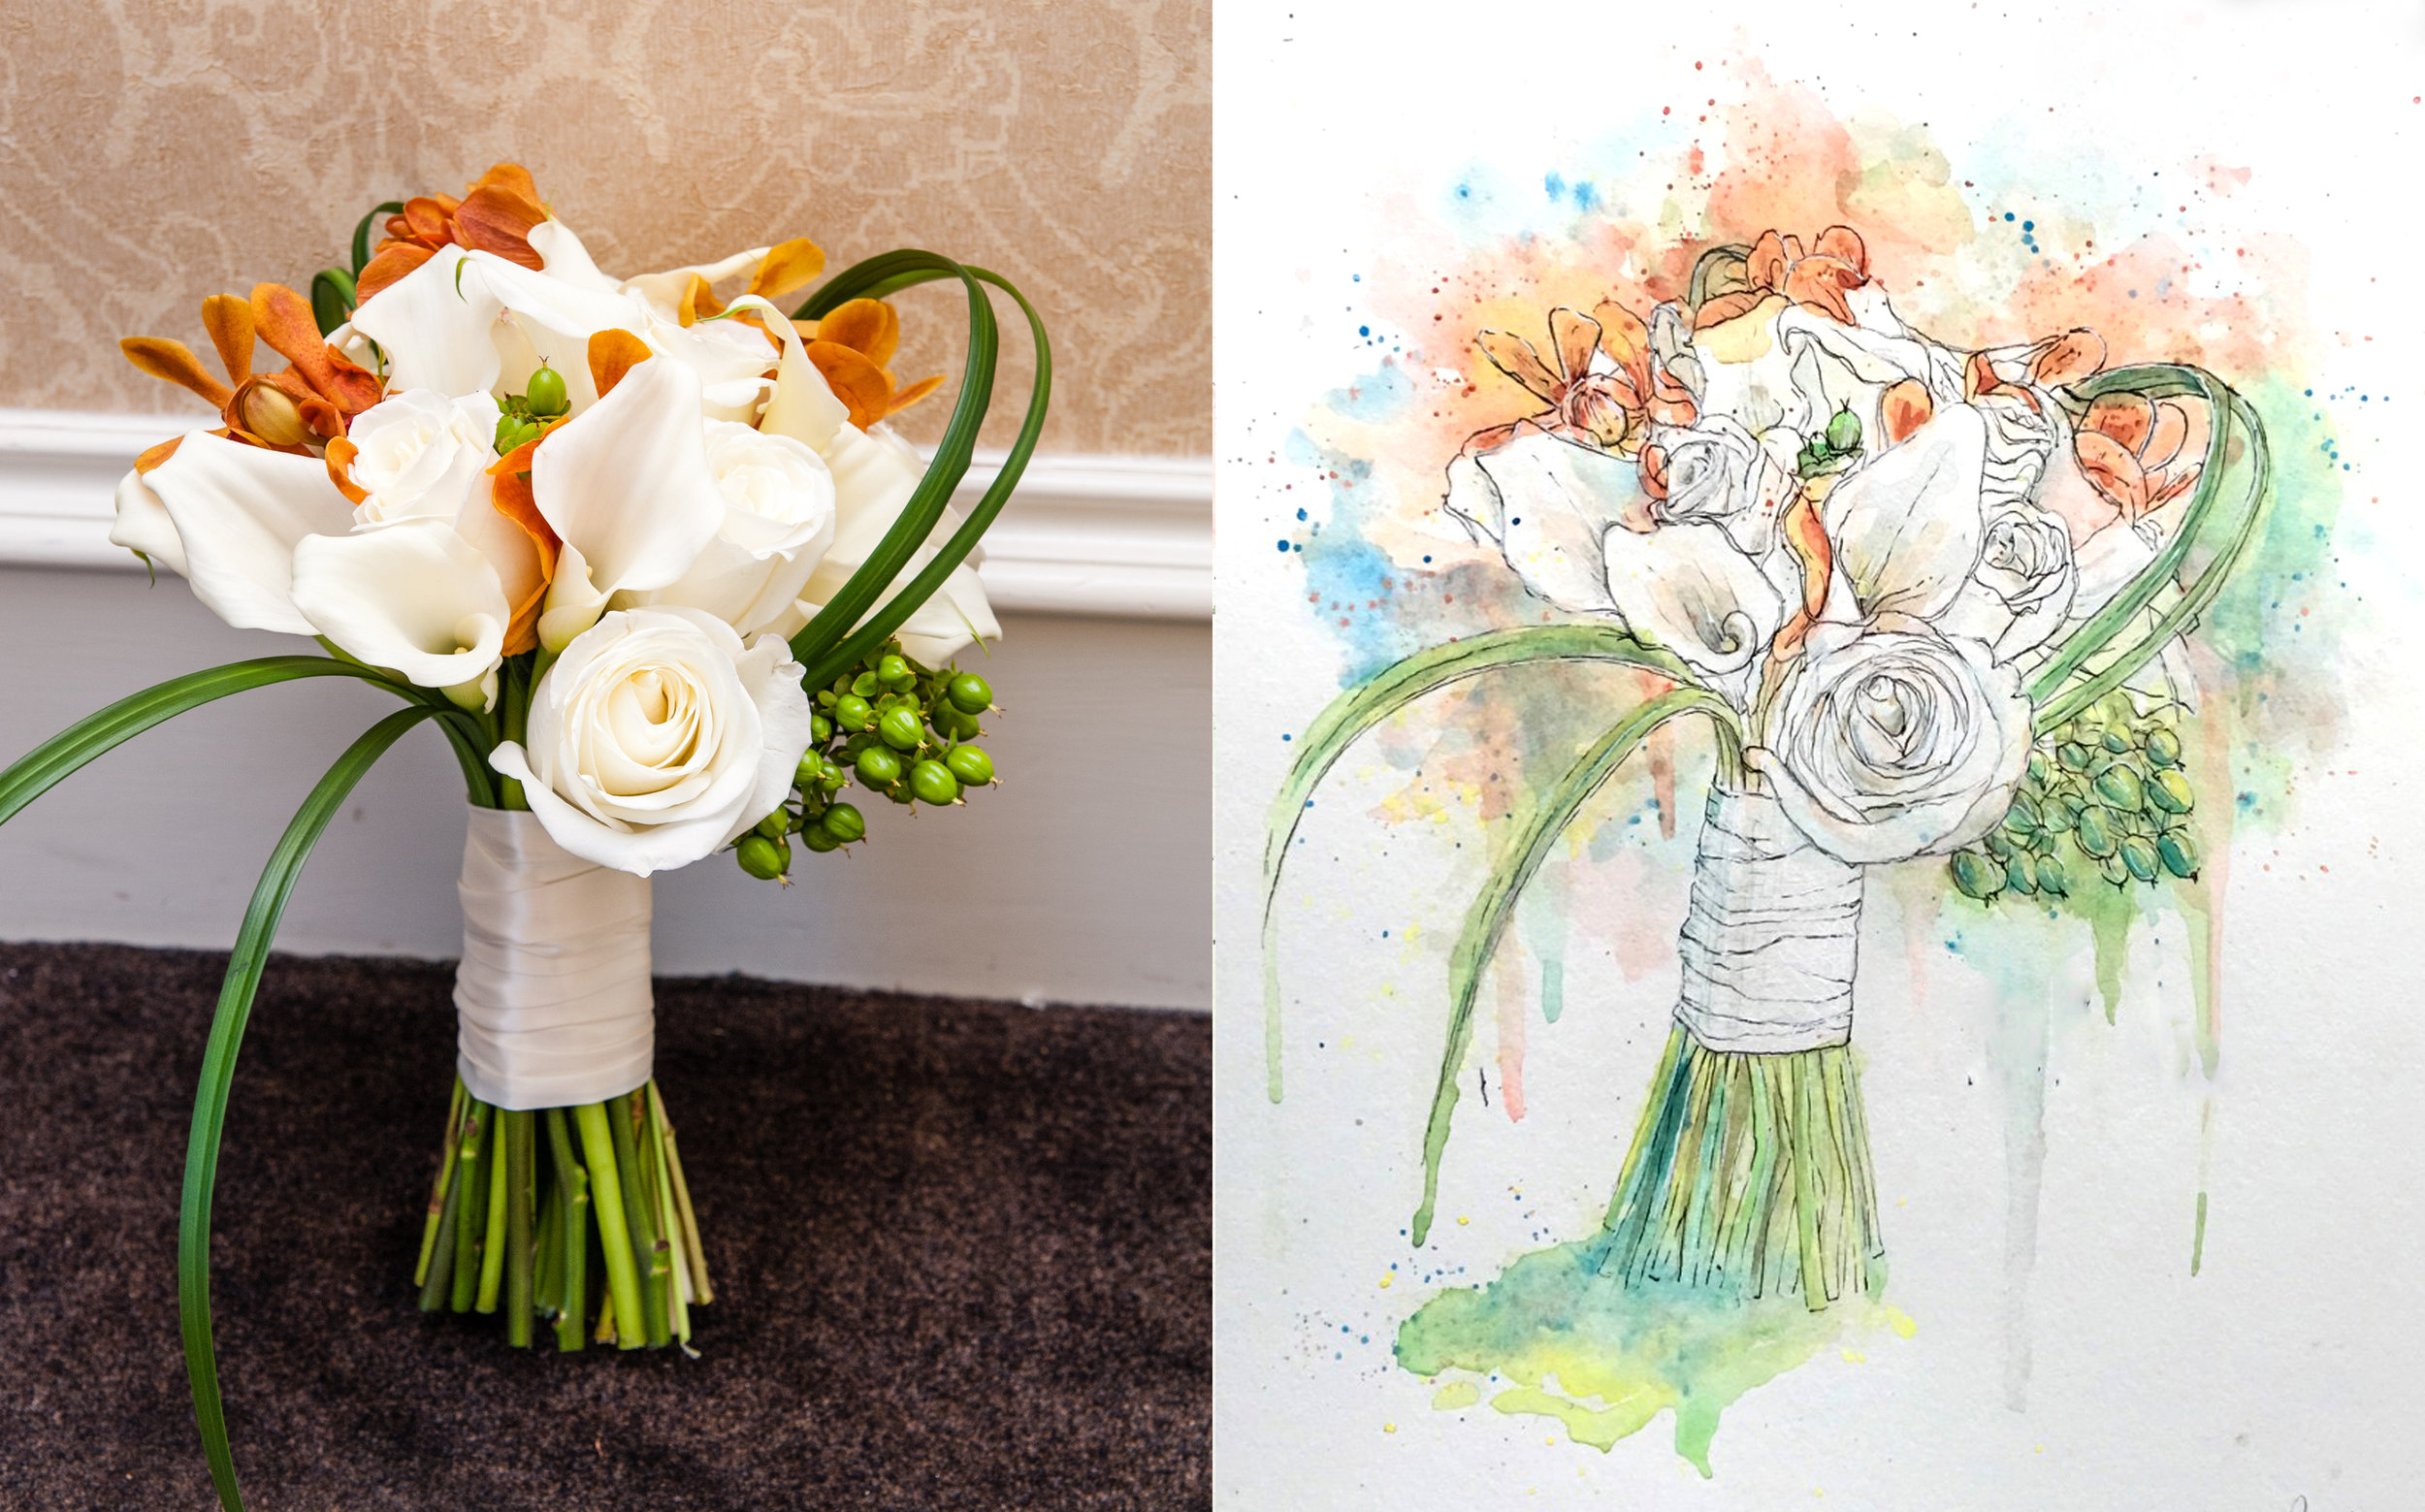 Watercolor Bouquets - An original watercolor & ink painting created from a photo of your special bouquet. Symbolizing love, life and growth, it's the perfect piece to remind you of your special day and what you hold close to your heart. Available in 7 sizes.